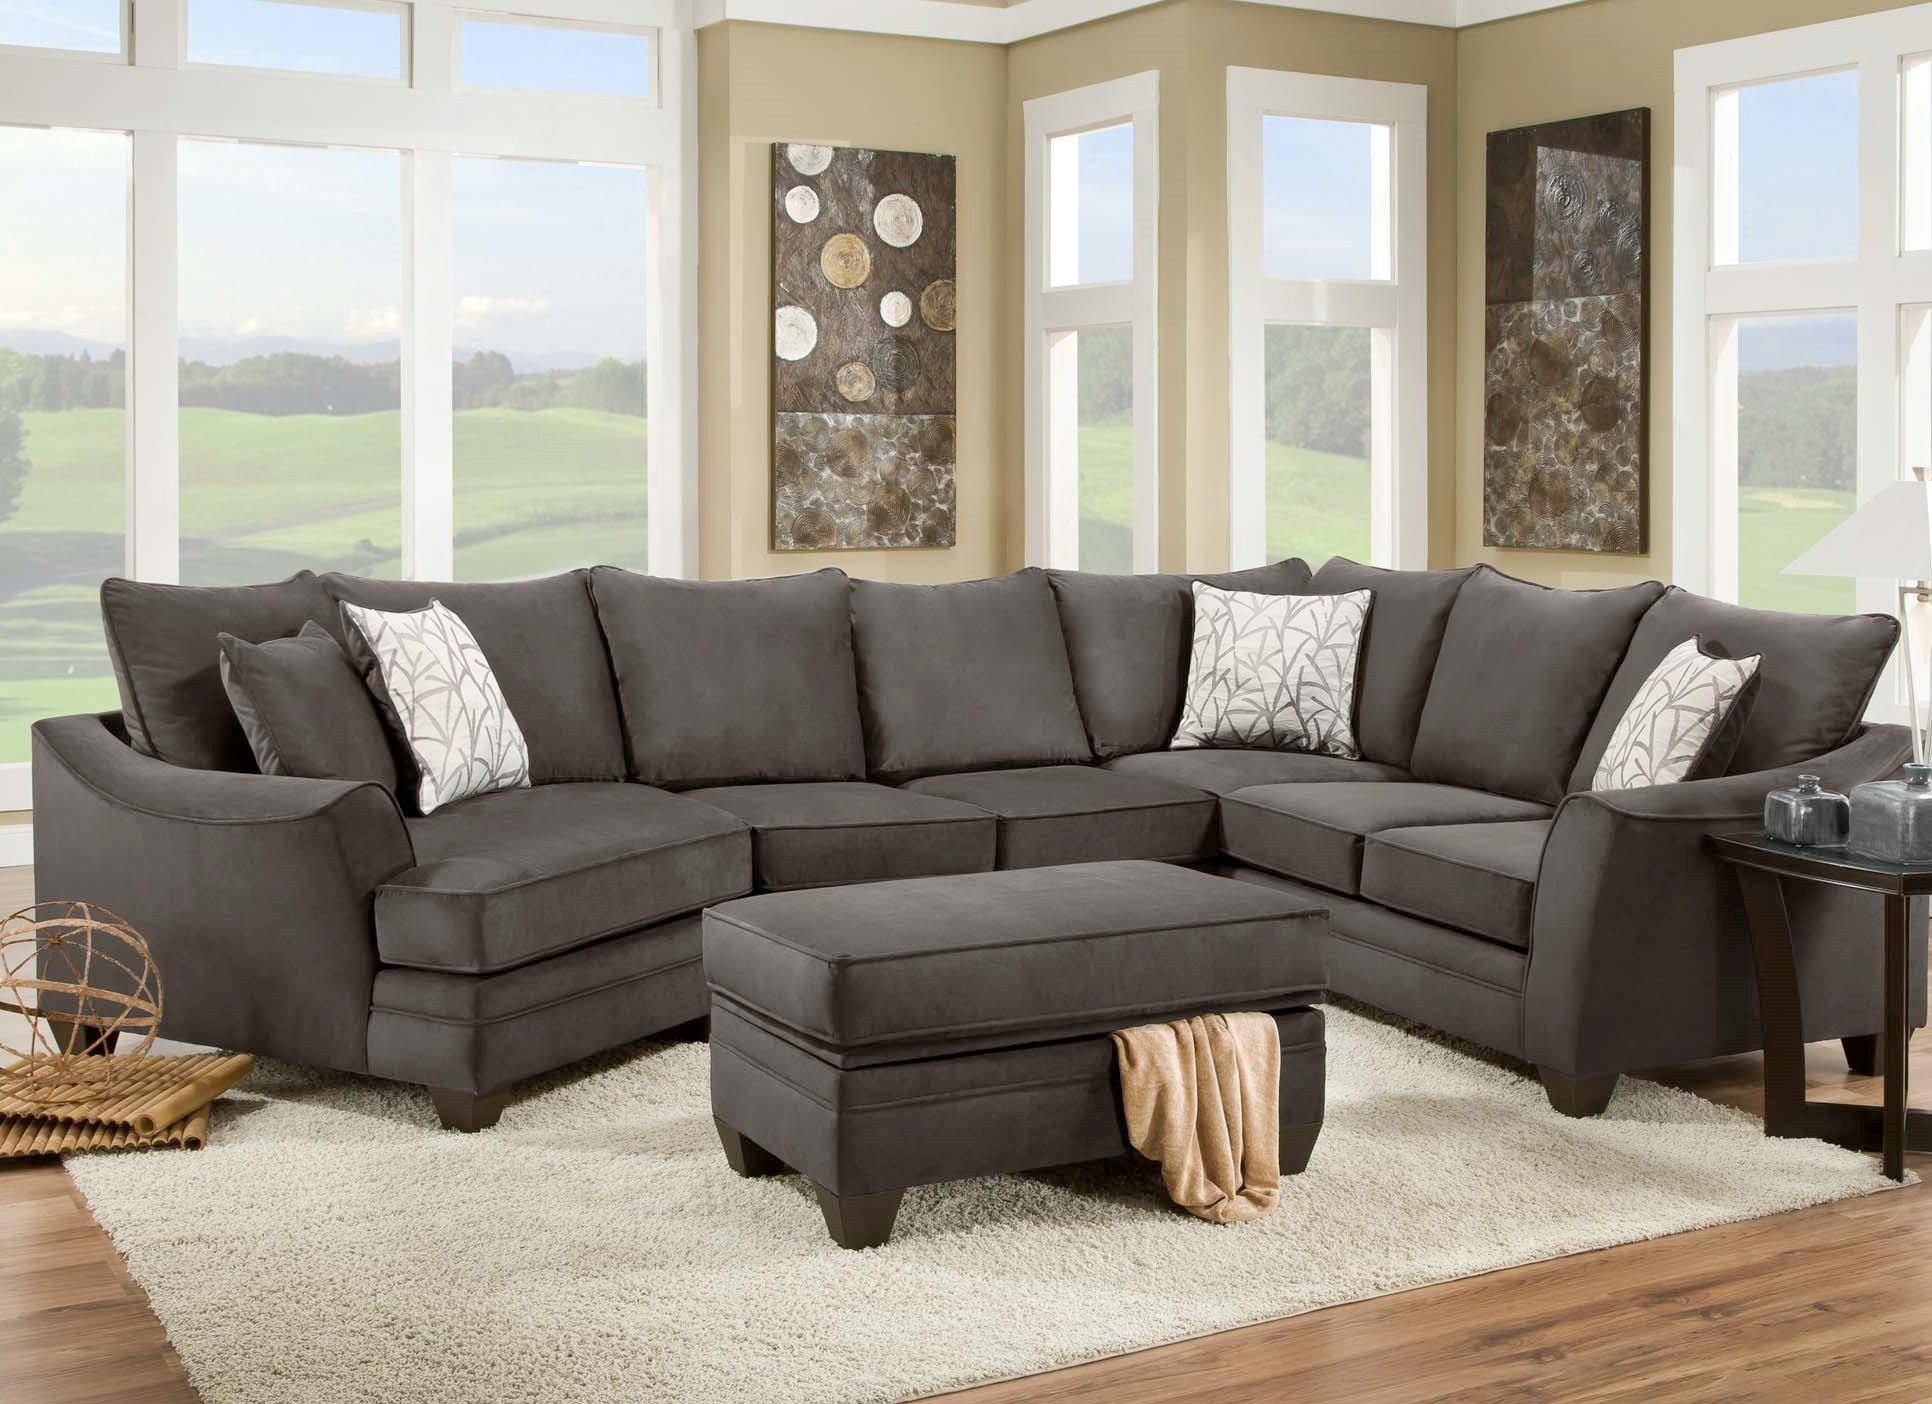 American Furniture 3810 Sectional Sofa That Seats 5 With Left Side for Sectional Sofa With Cuddler Chaise (Image 2 of 25)